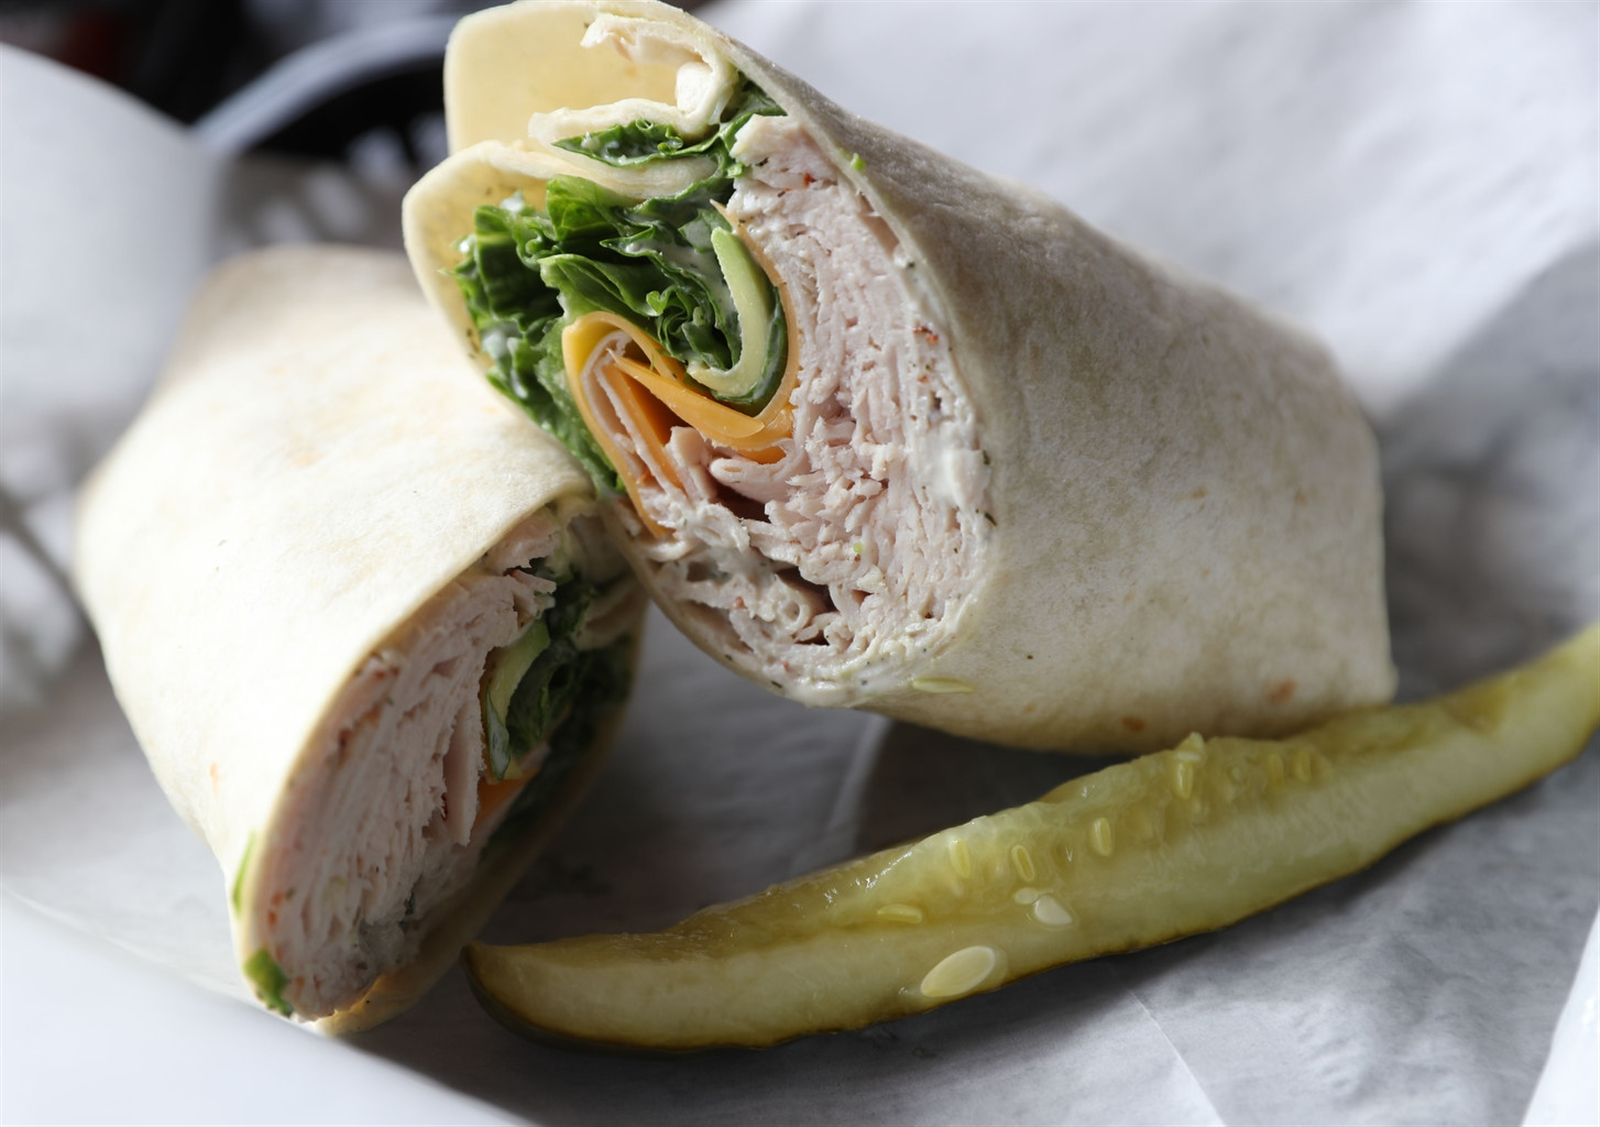 The Youngs is a turkey wrap with avocado.